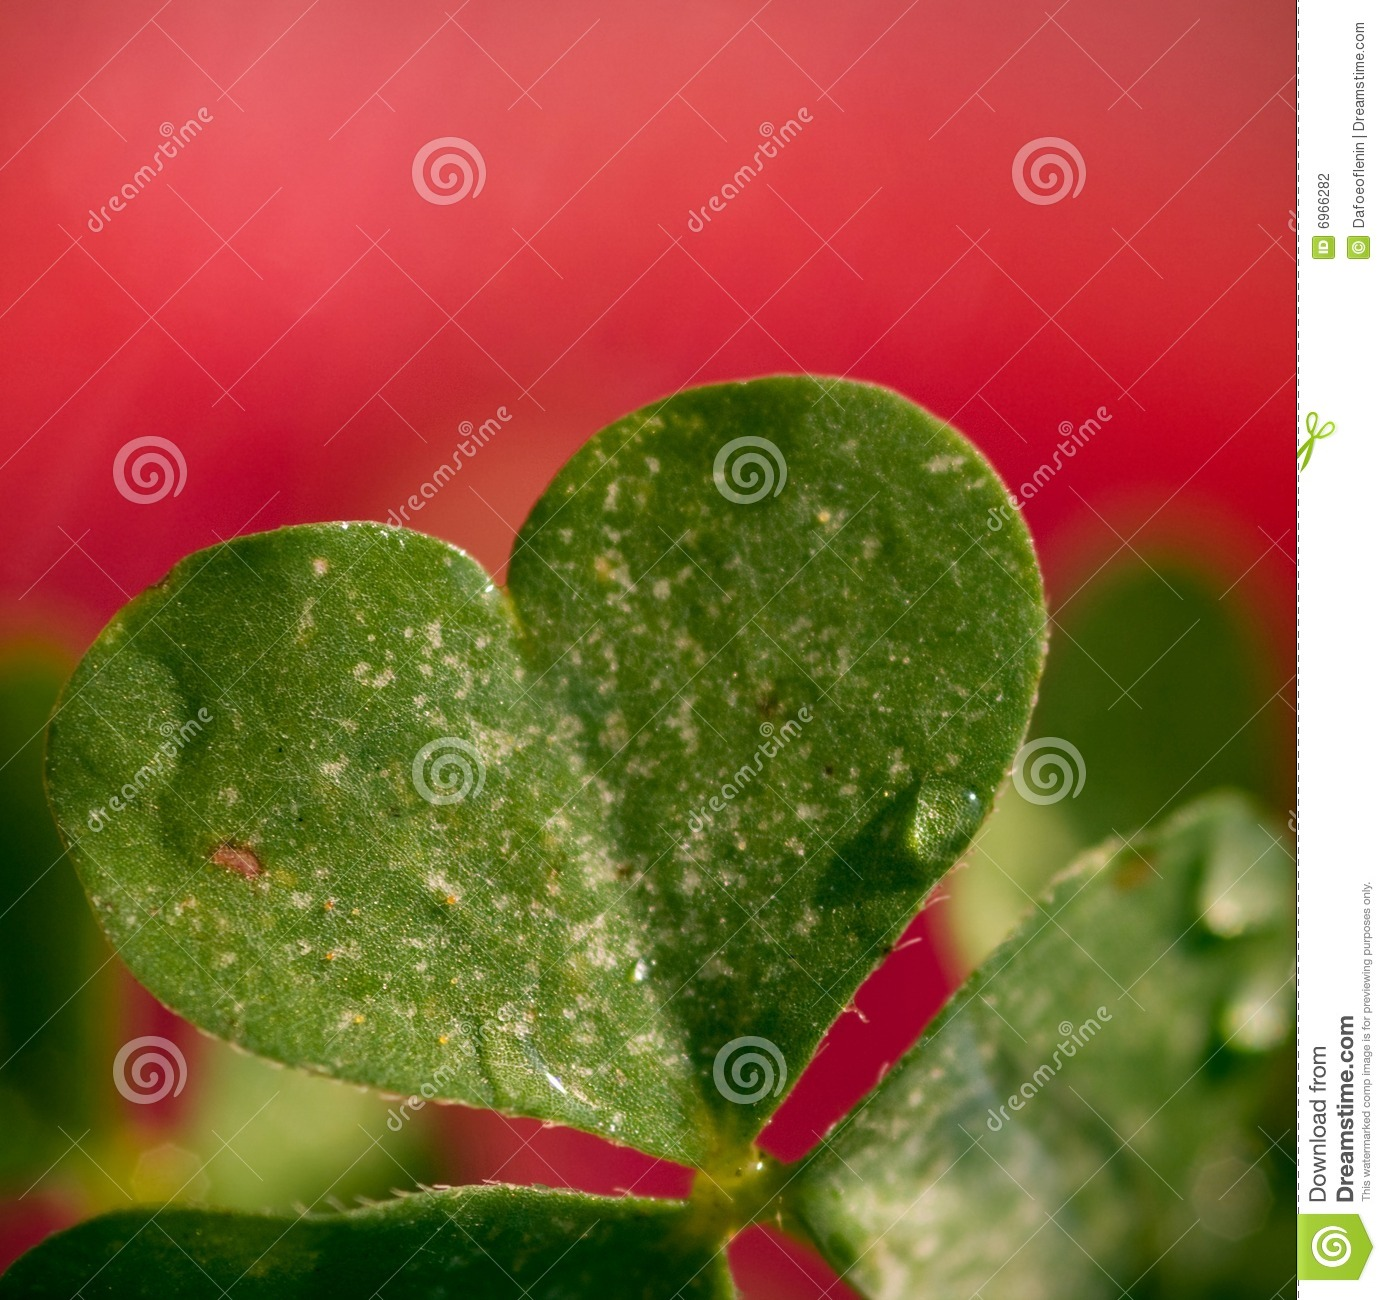 Clover Love Stock Photo Image Of Detail Green Shaped 6966282